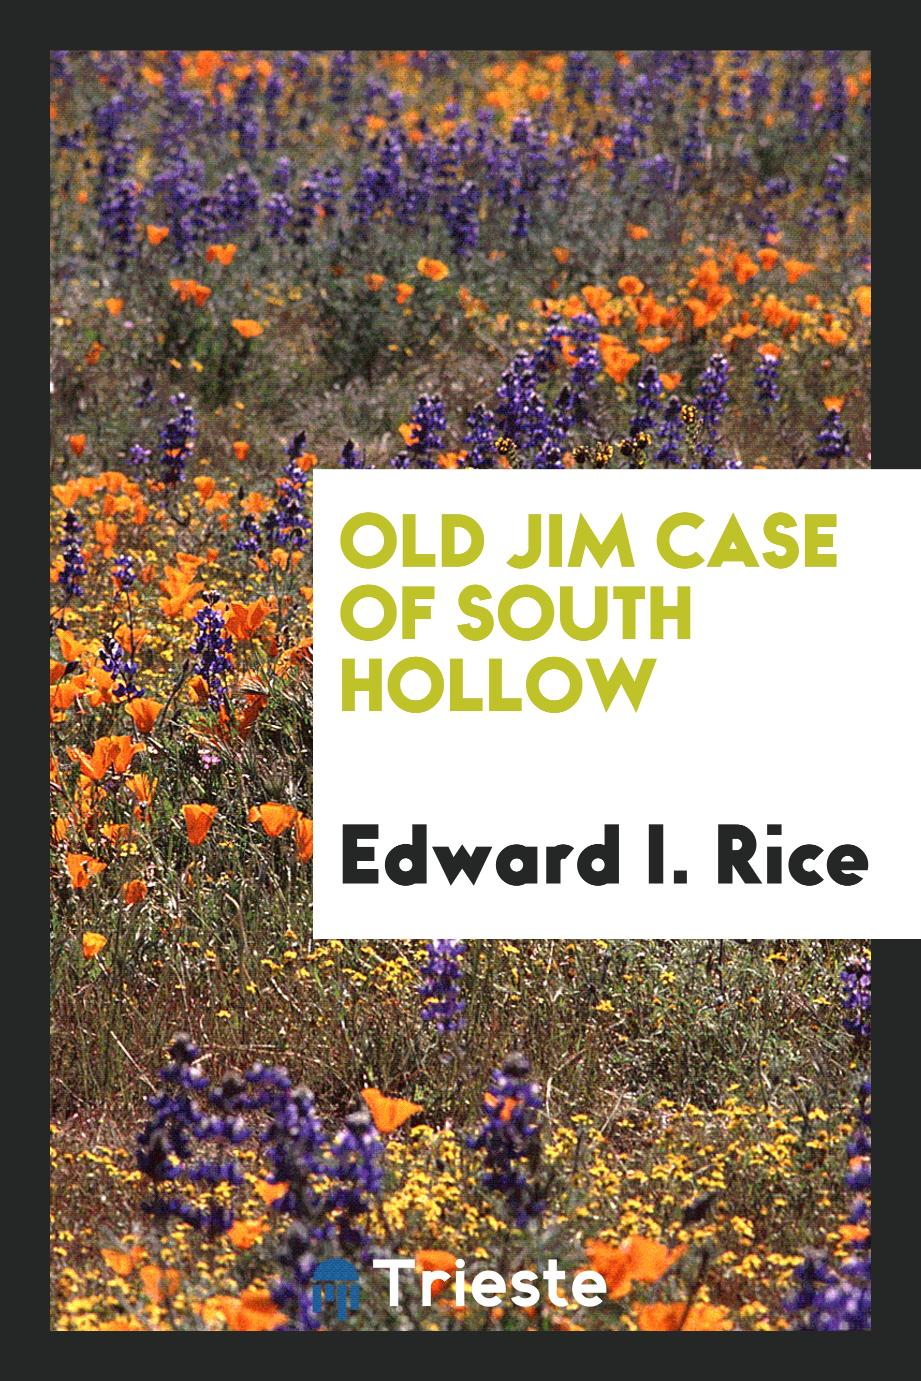 Old Jim Case of South Hollow